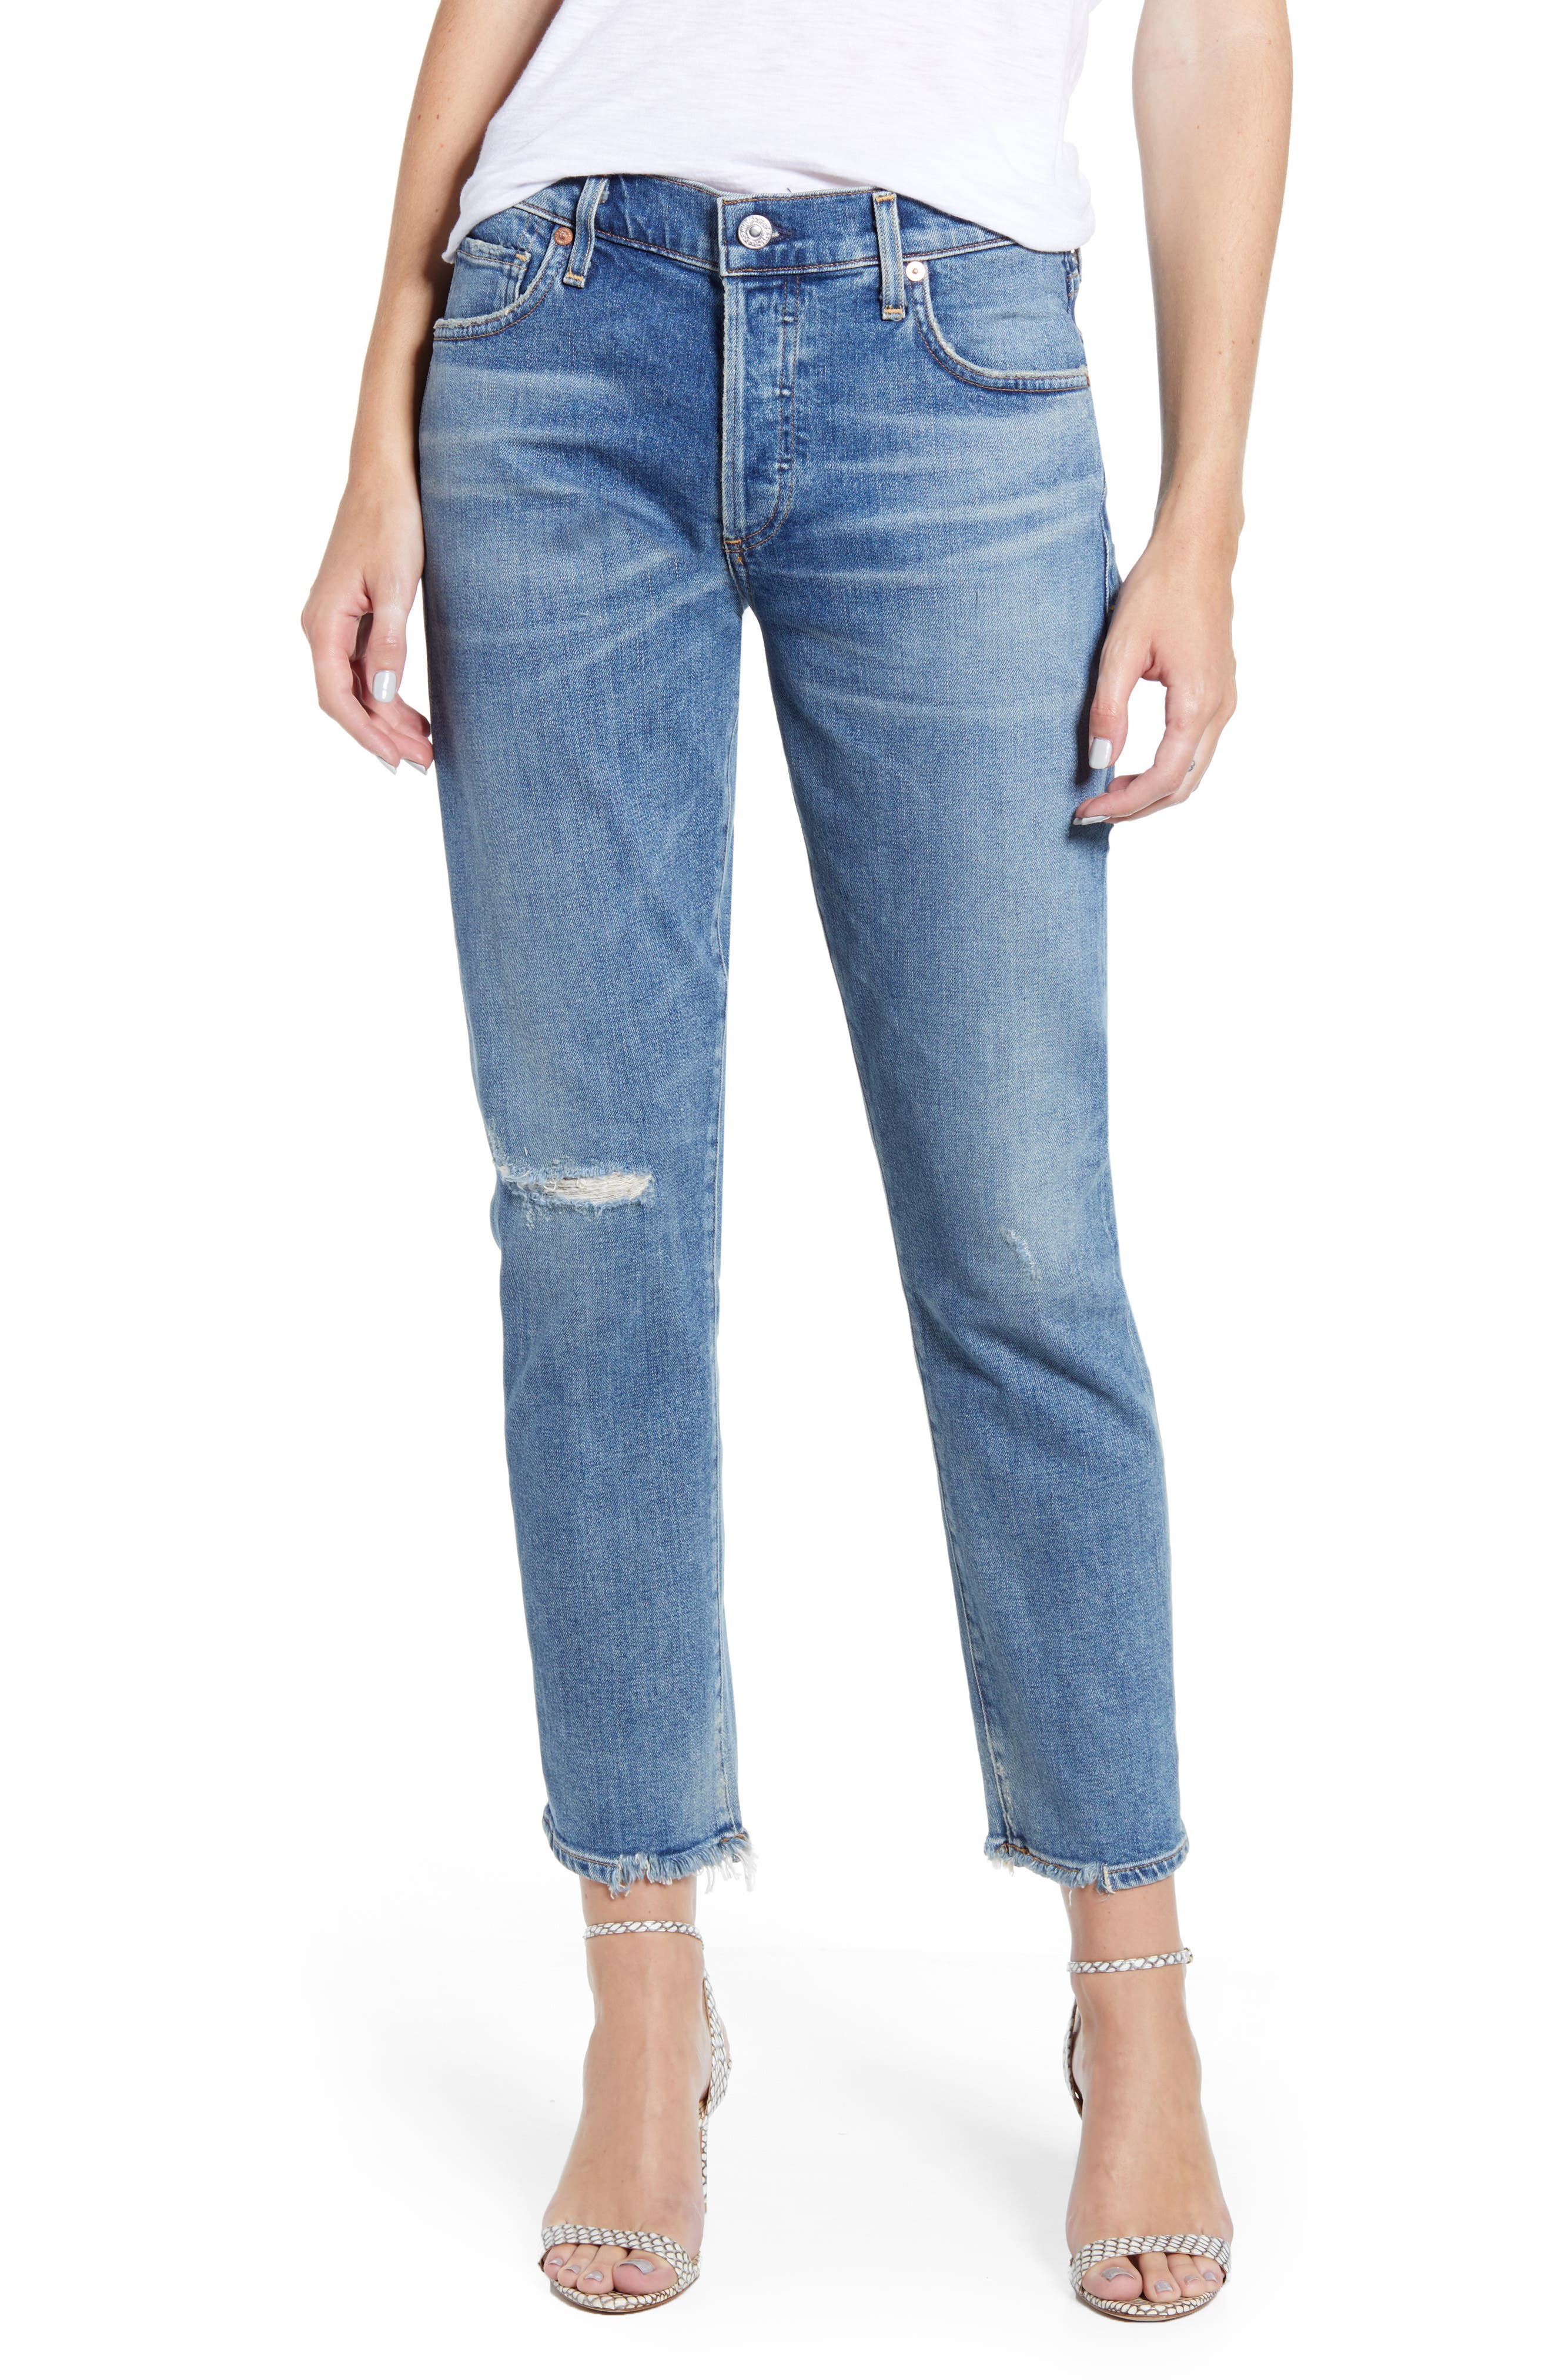 Citizens of Humanity Emerson Ripped Slim Fit Boyfriend Jeans (Cadence)